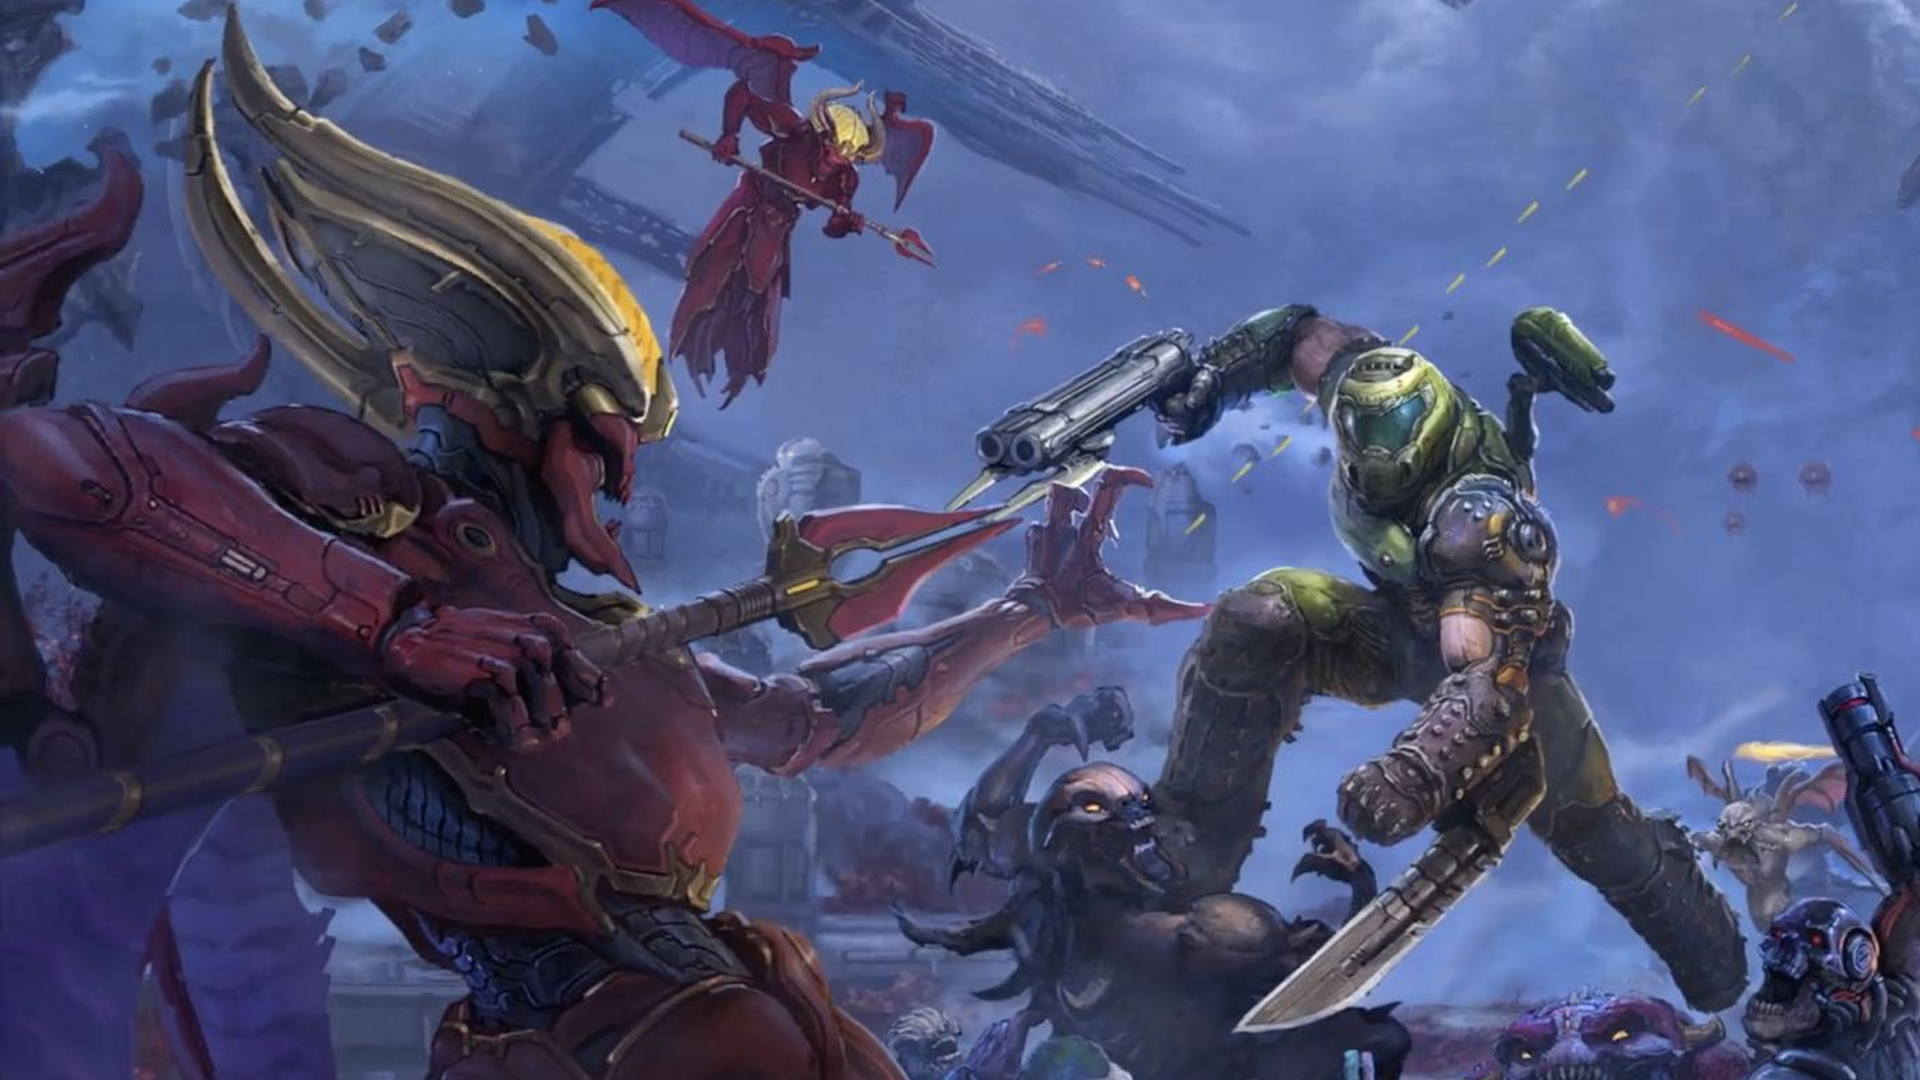 DOOM Eternal: The Ancient Gods - New Composers Share A Taste Of The Soundtrack